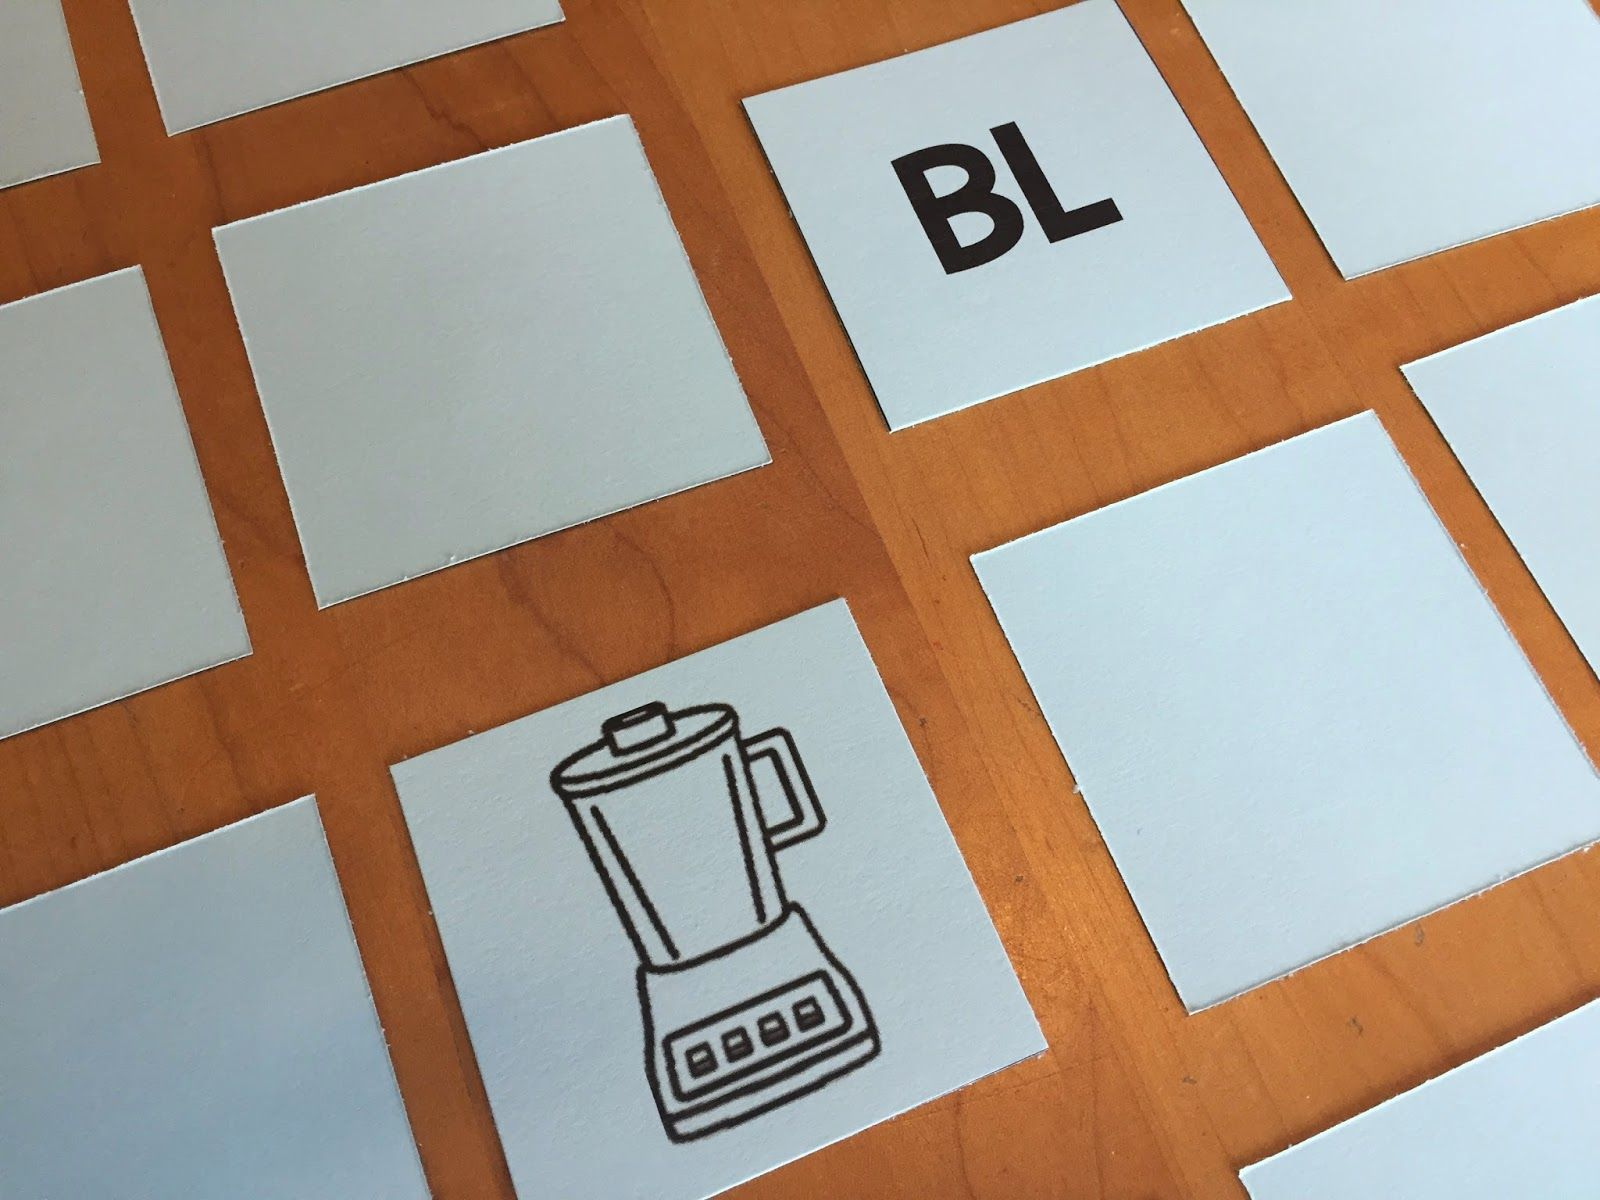 Blog Post About L Blends Phonics Activities A Whole Week